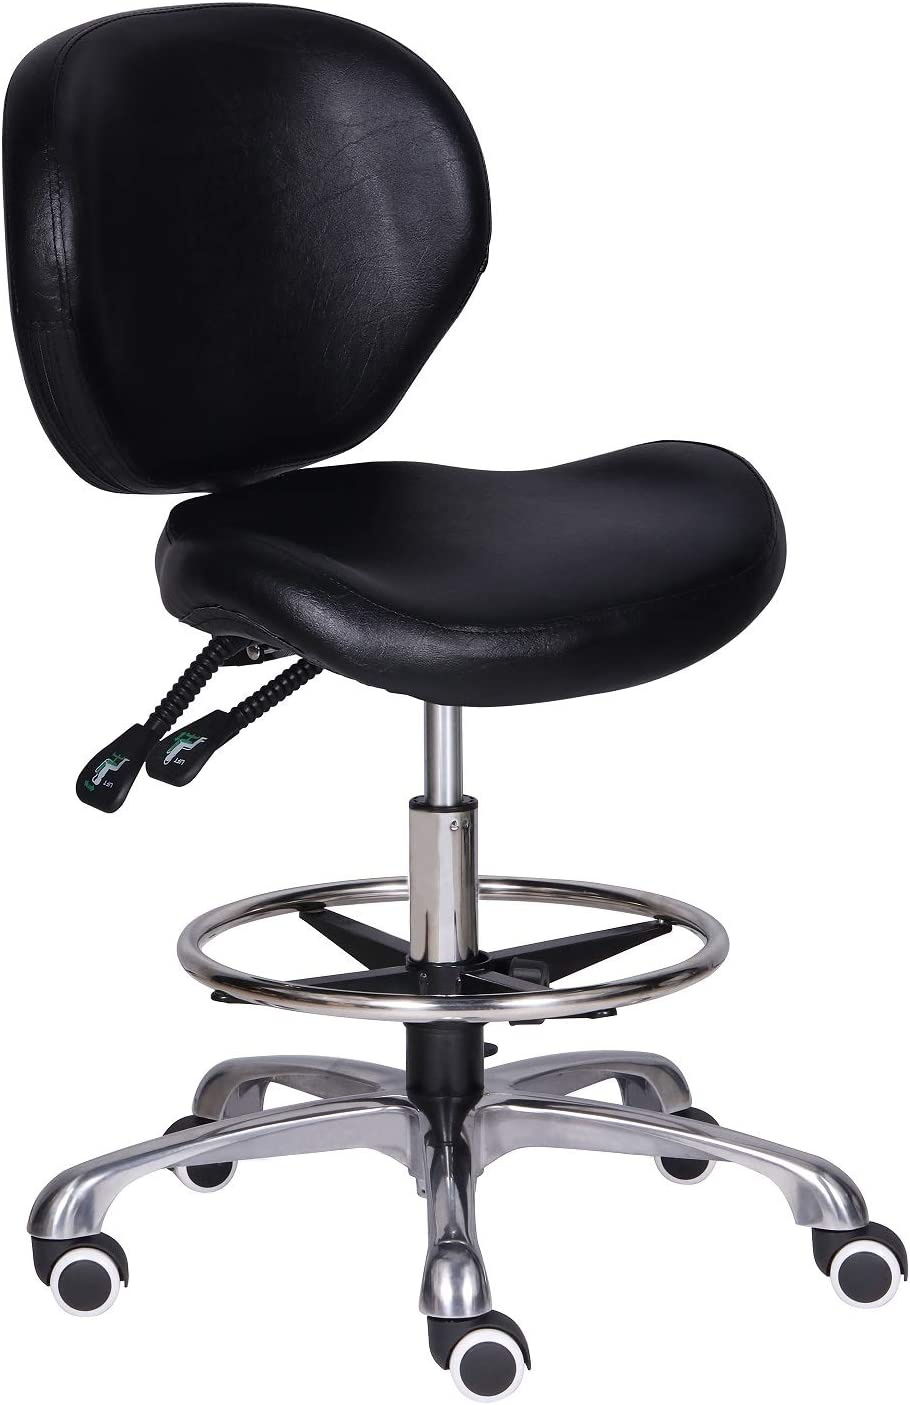 Kaleurrier Adjustable Stools Drafting Chair with Backrest & Foot Rest,Tilt Back,Peneumatic Lifting Height,Swivel Seat,Rolling wheels,for Studio,Dental,Office,Salon and Counter,Home Desk Chairs (Black)